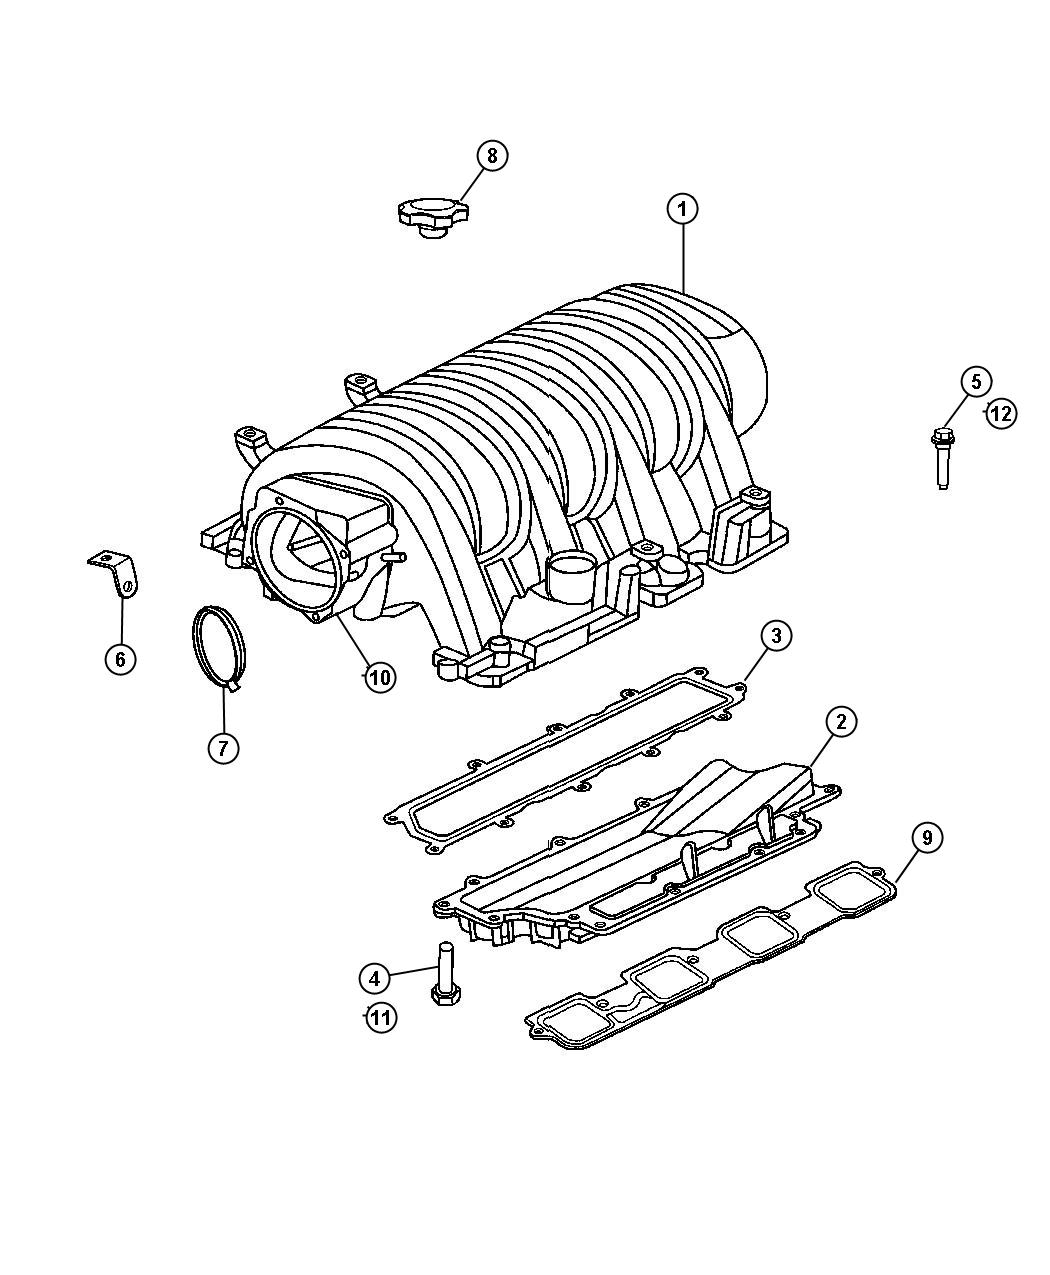 top suggestions parts schematic manifold 5 7 hemi engine :